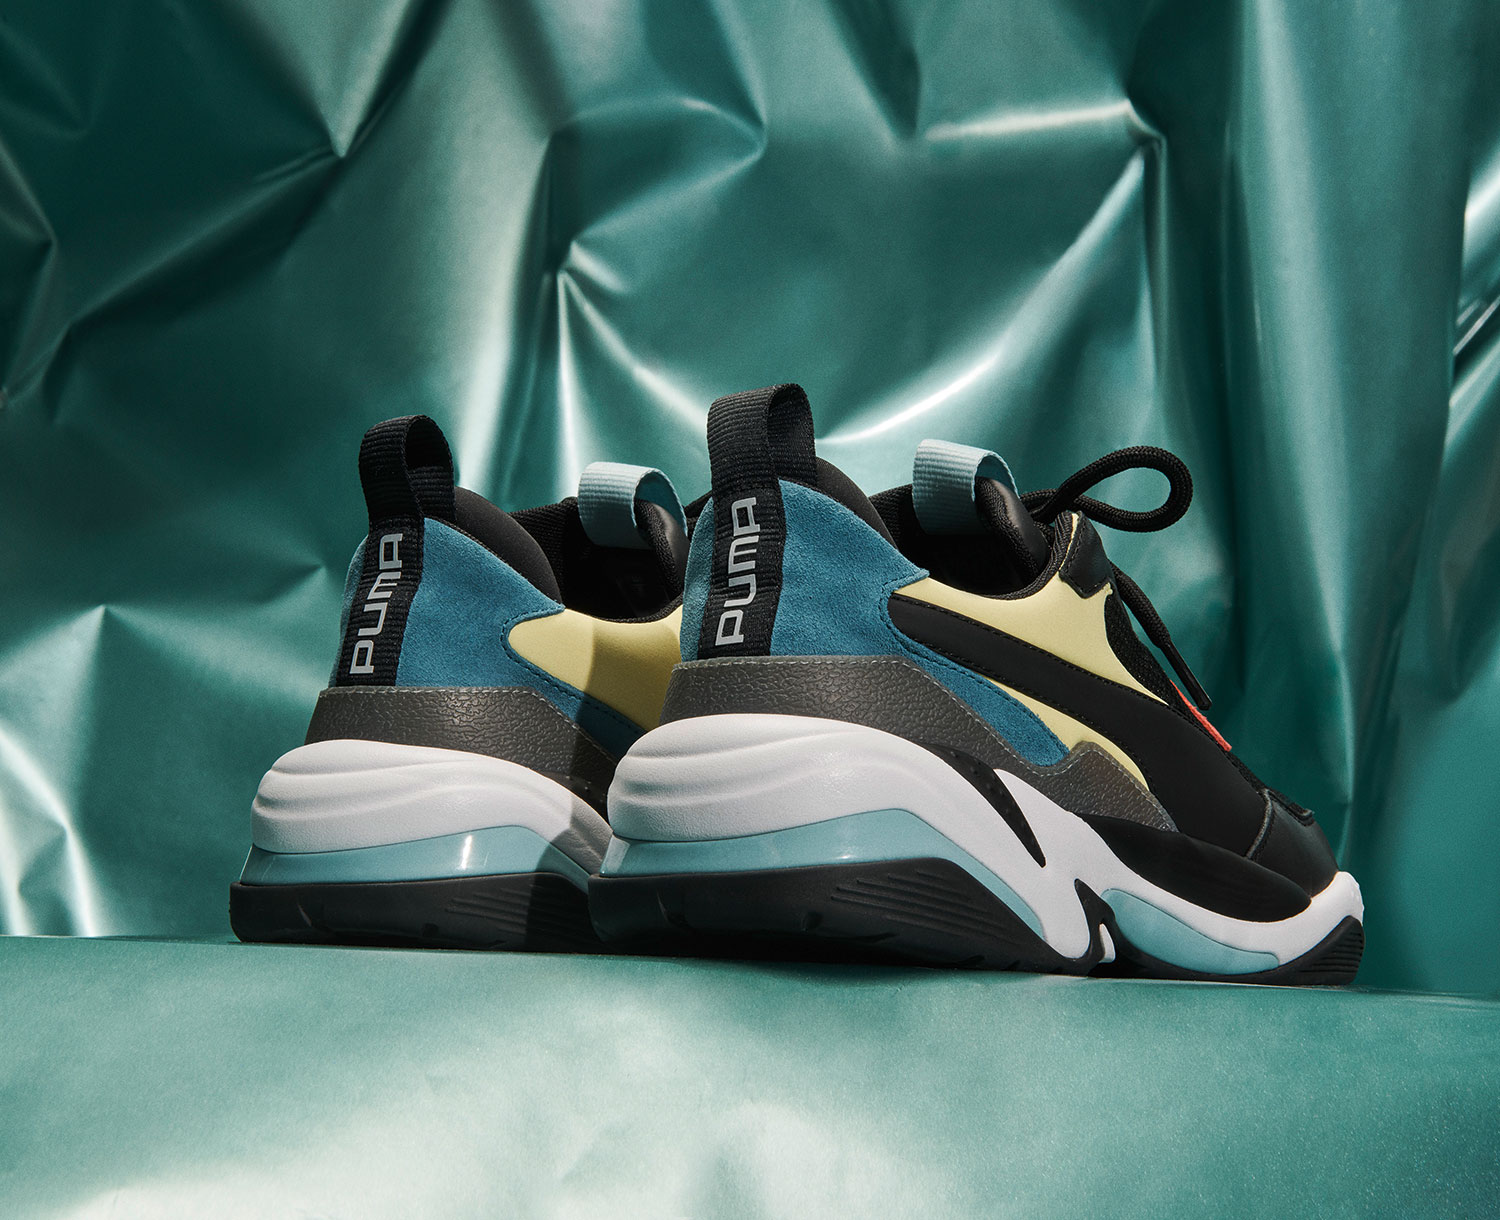 A NEW ERA OF SPORT FASHION – THIS IS THUNDER SPECTRA